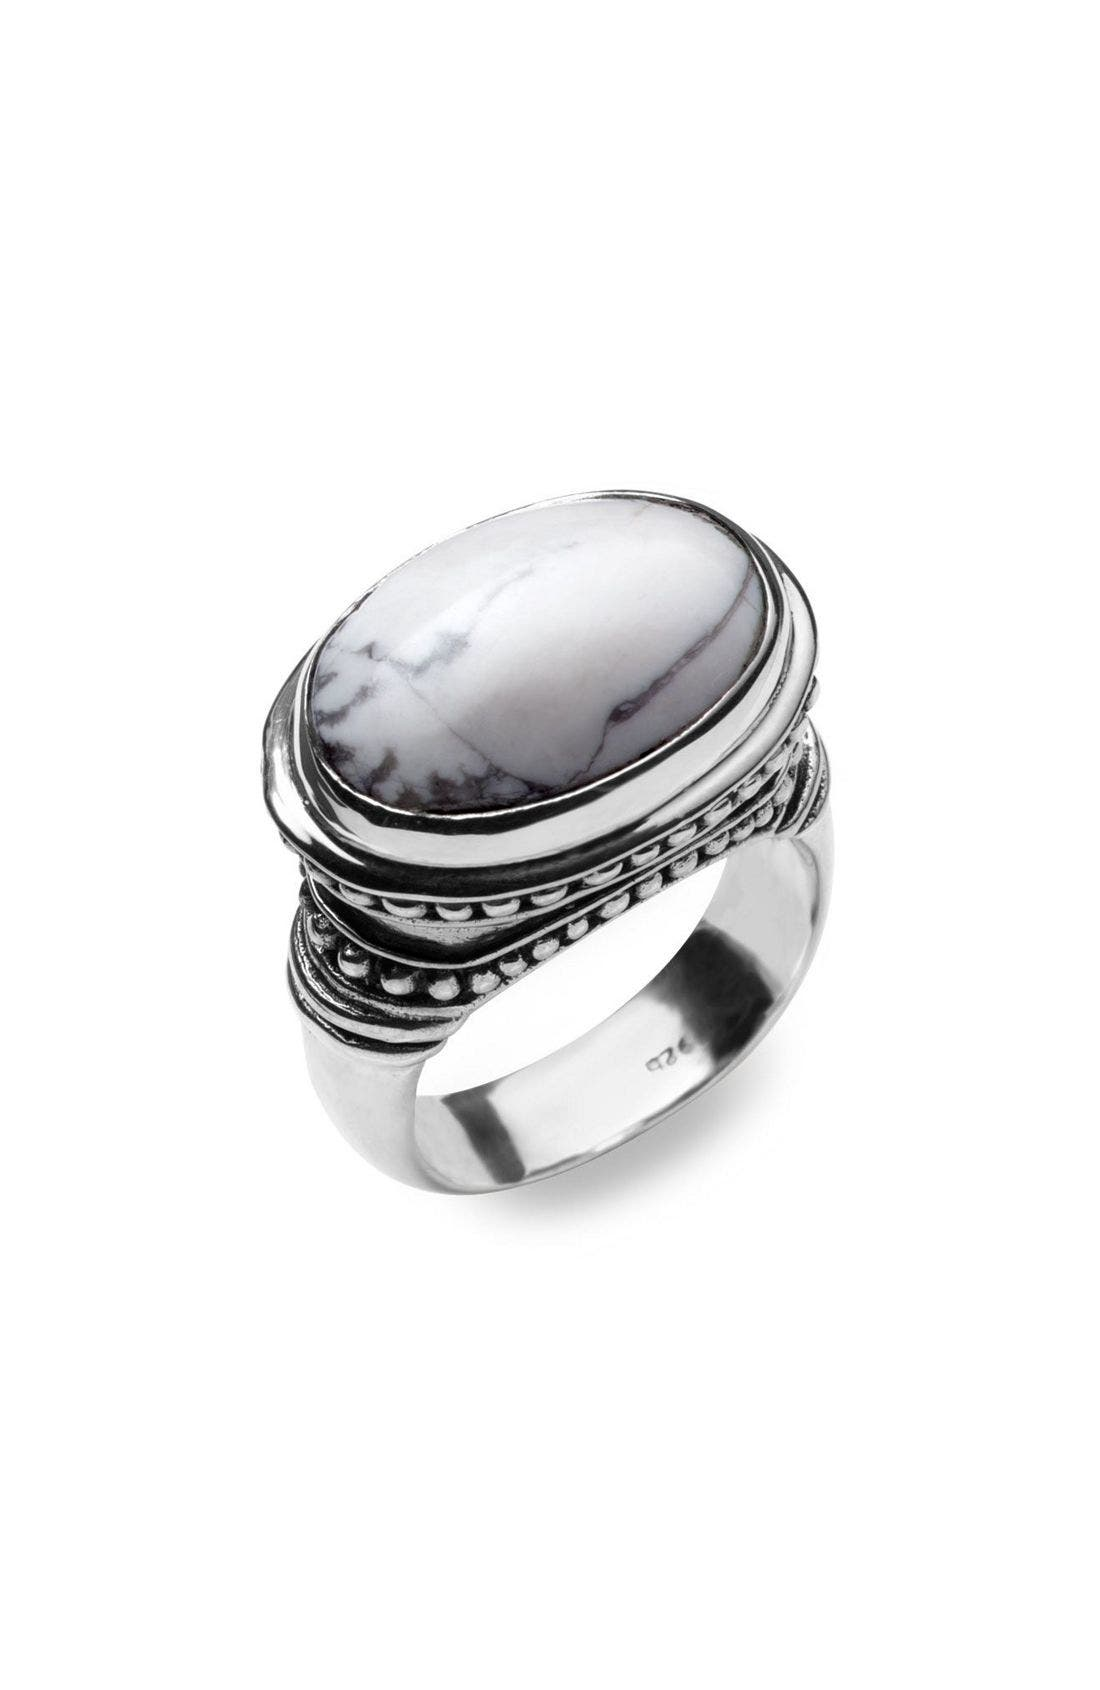 Main Image - EXEX by Claudia Agudelo Oval Ring